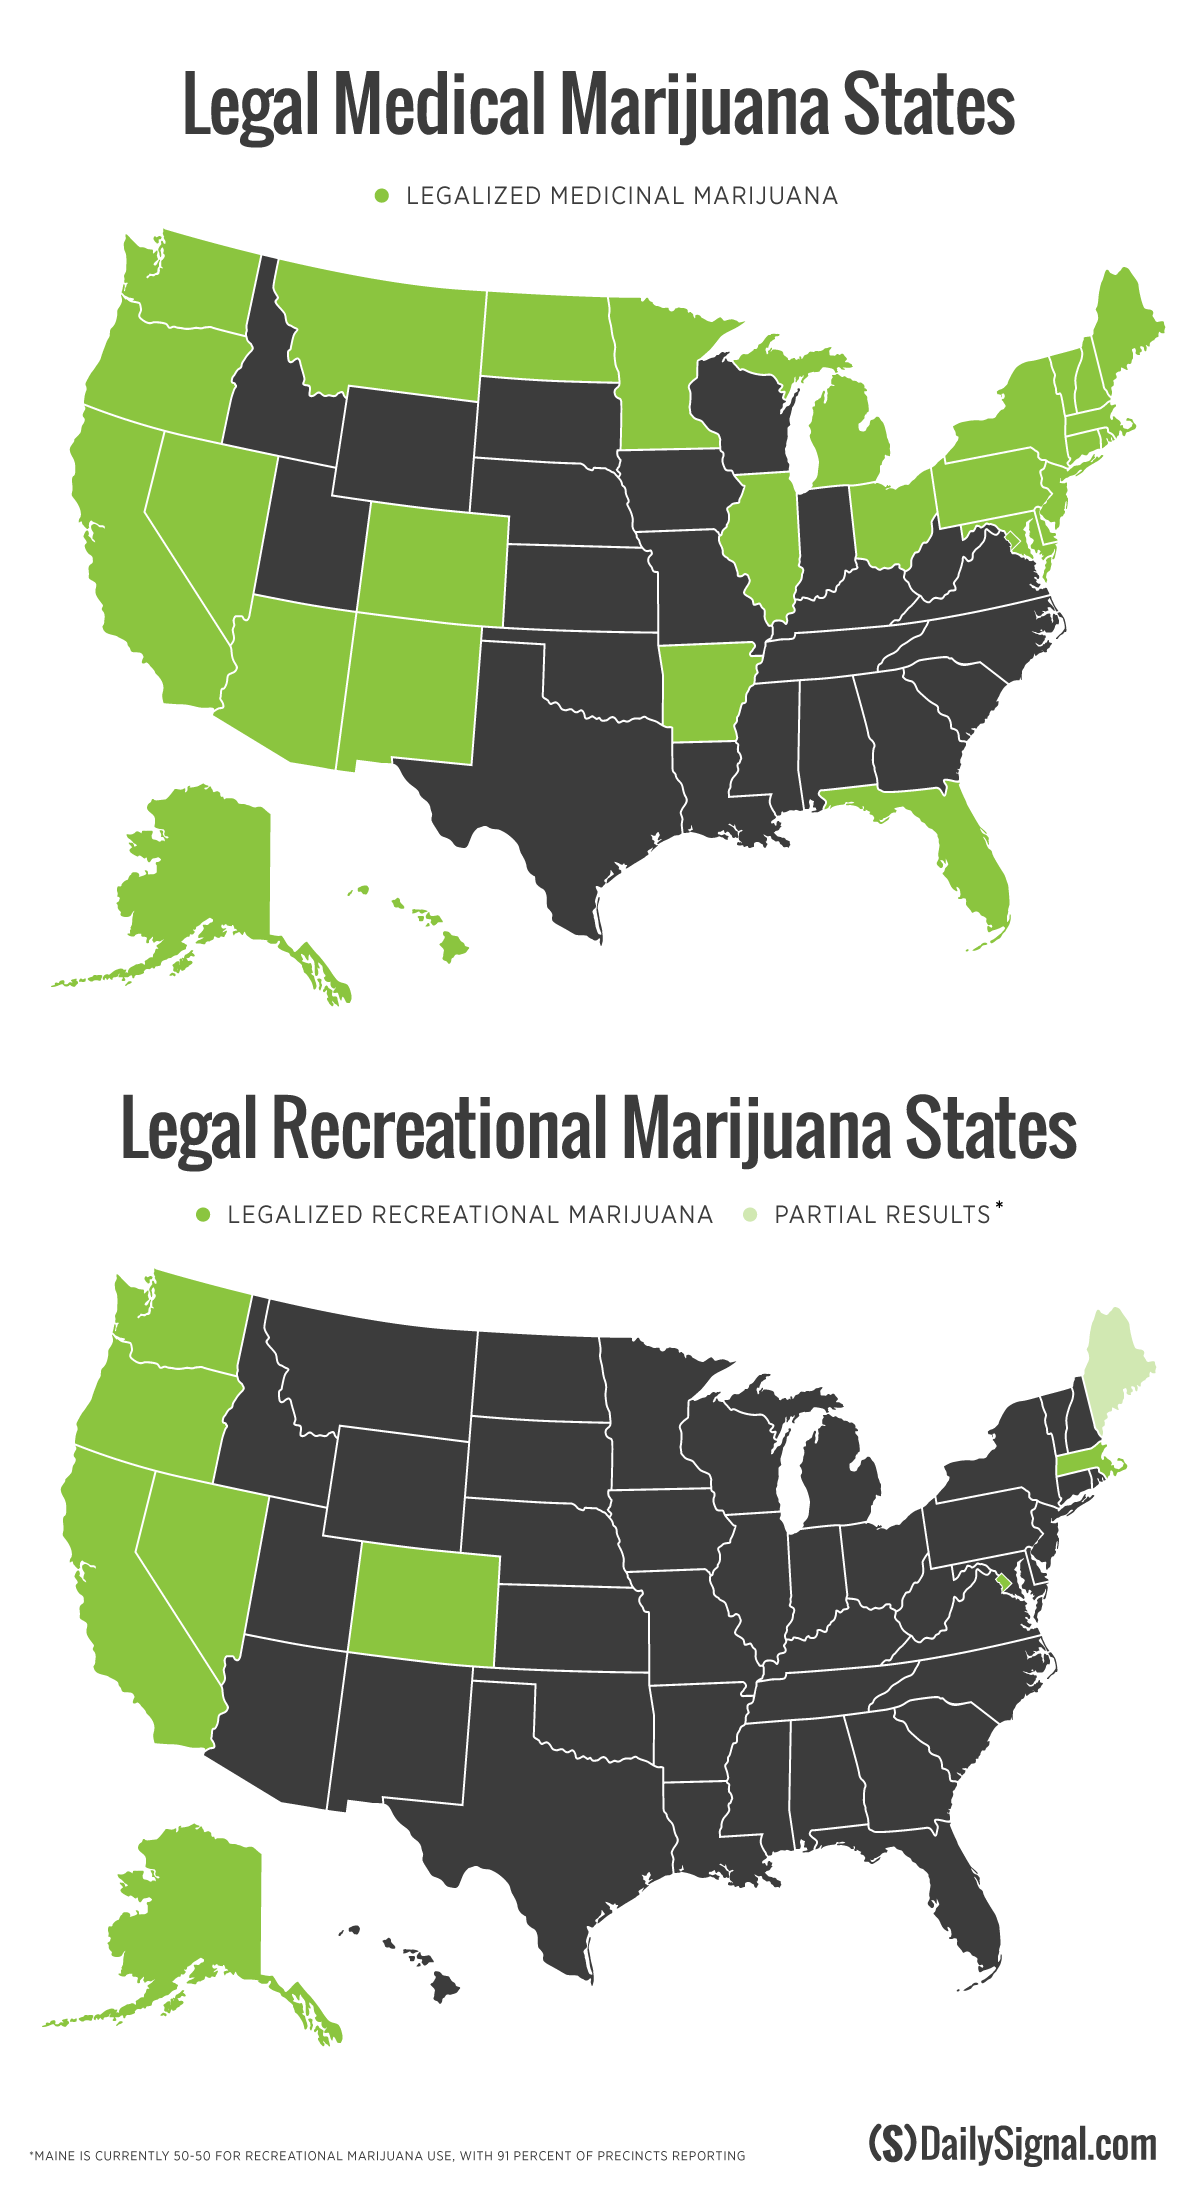 the legitimate and medical use of marijuana Additionally, some data suggests that medical marijuana treatment may reduce the opioid dose prescribed for pain patients, 7,8 while another recent nih-funded study suggests that cannabis use appears to increase the risk of developing and opioid use disorder 9 nida is funding additional studies to determine the link between medical marijuana use and the use or misuse of opioids for specific types of pain, and also its possible role for treatment of opioid use disorder.